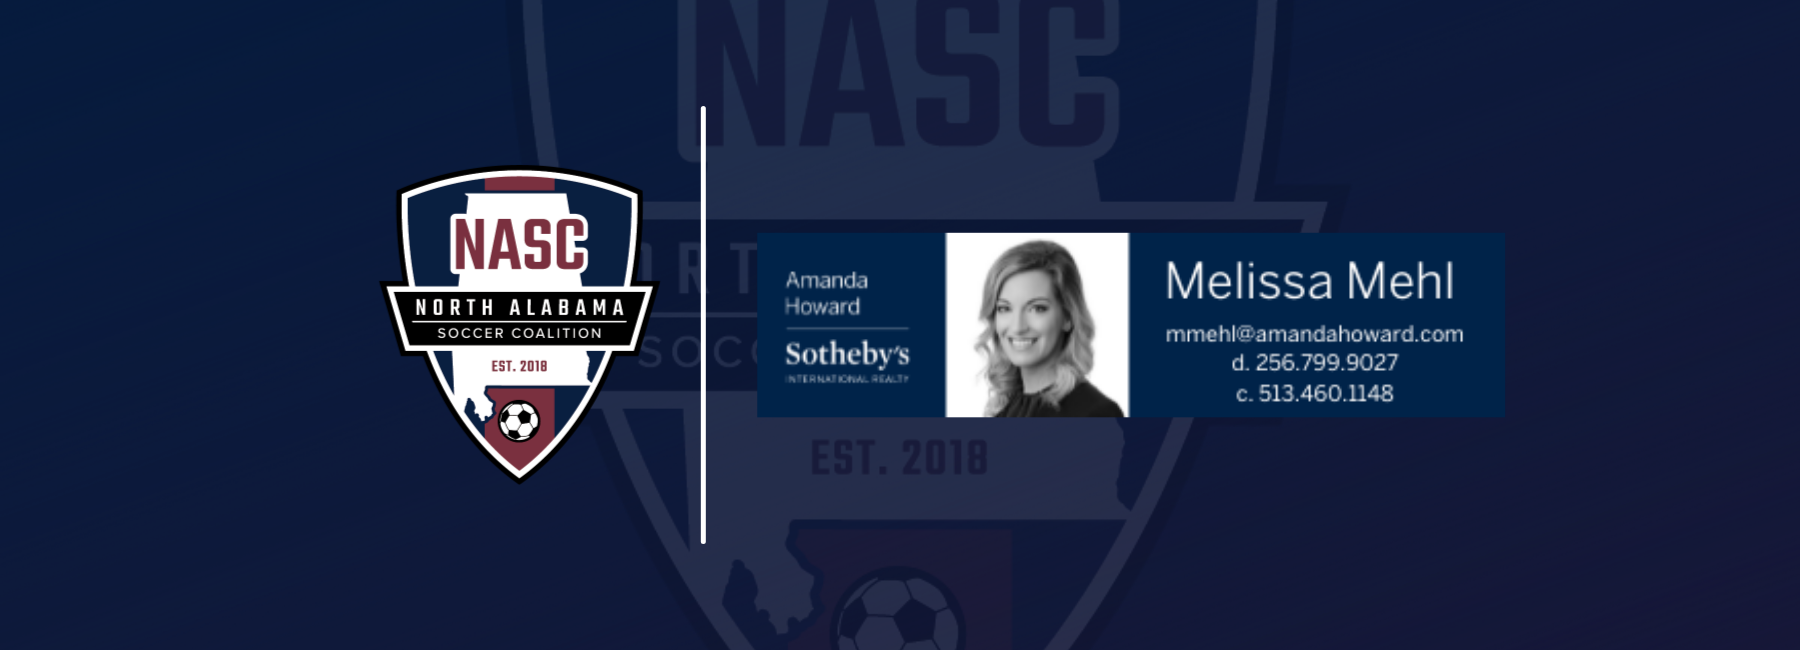 NASC PARTNERS WITH MELISSA MEHL